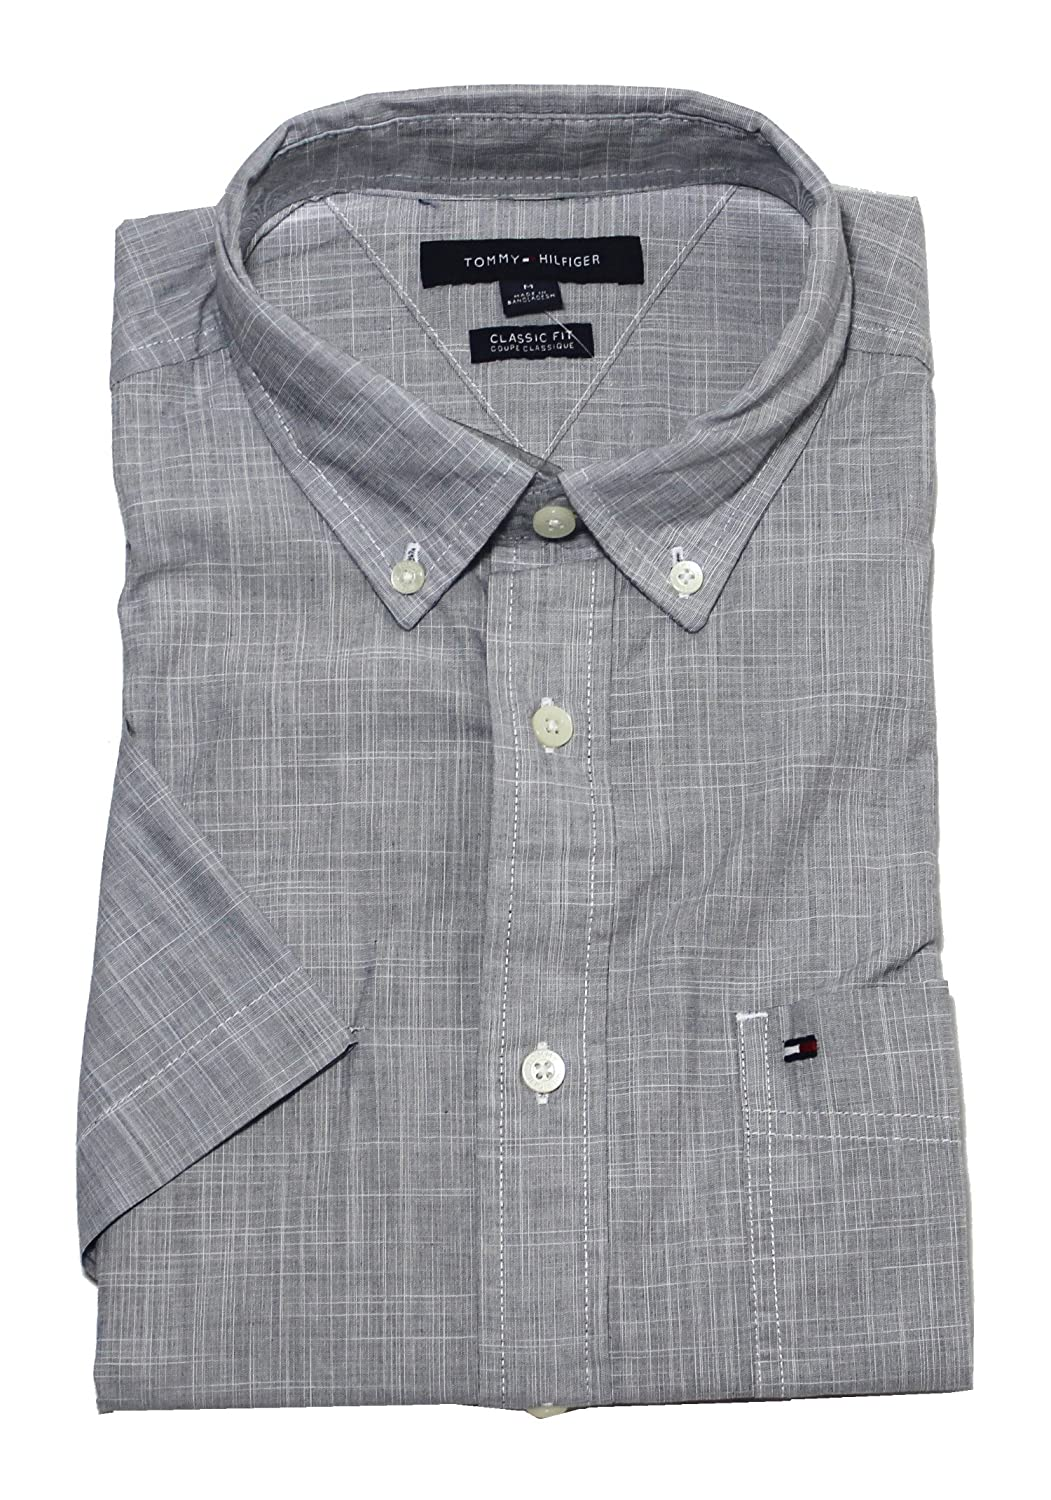 17067a0a Tommy Hilfiger Men's Classic Fit Short Sleeve Buttondown Shirt at Amazon  Men's Clothing store: